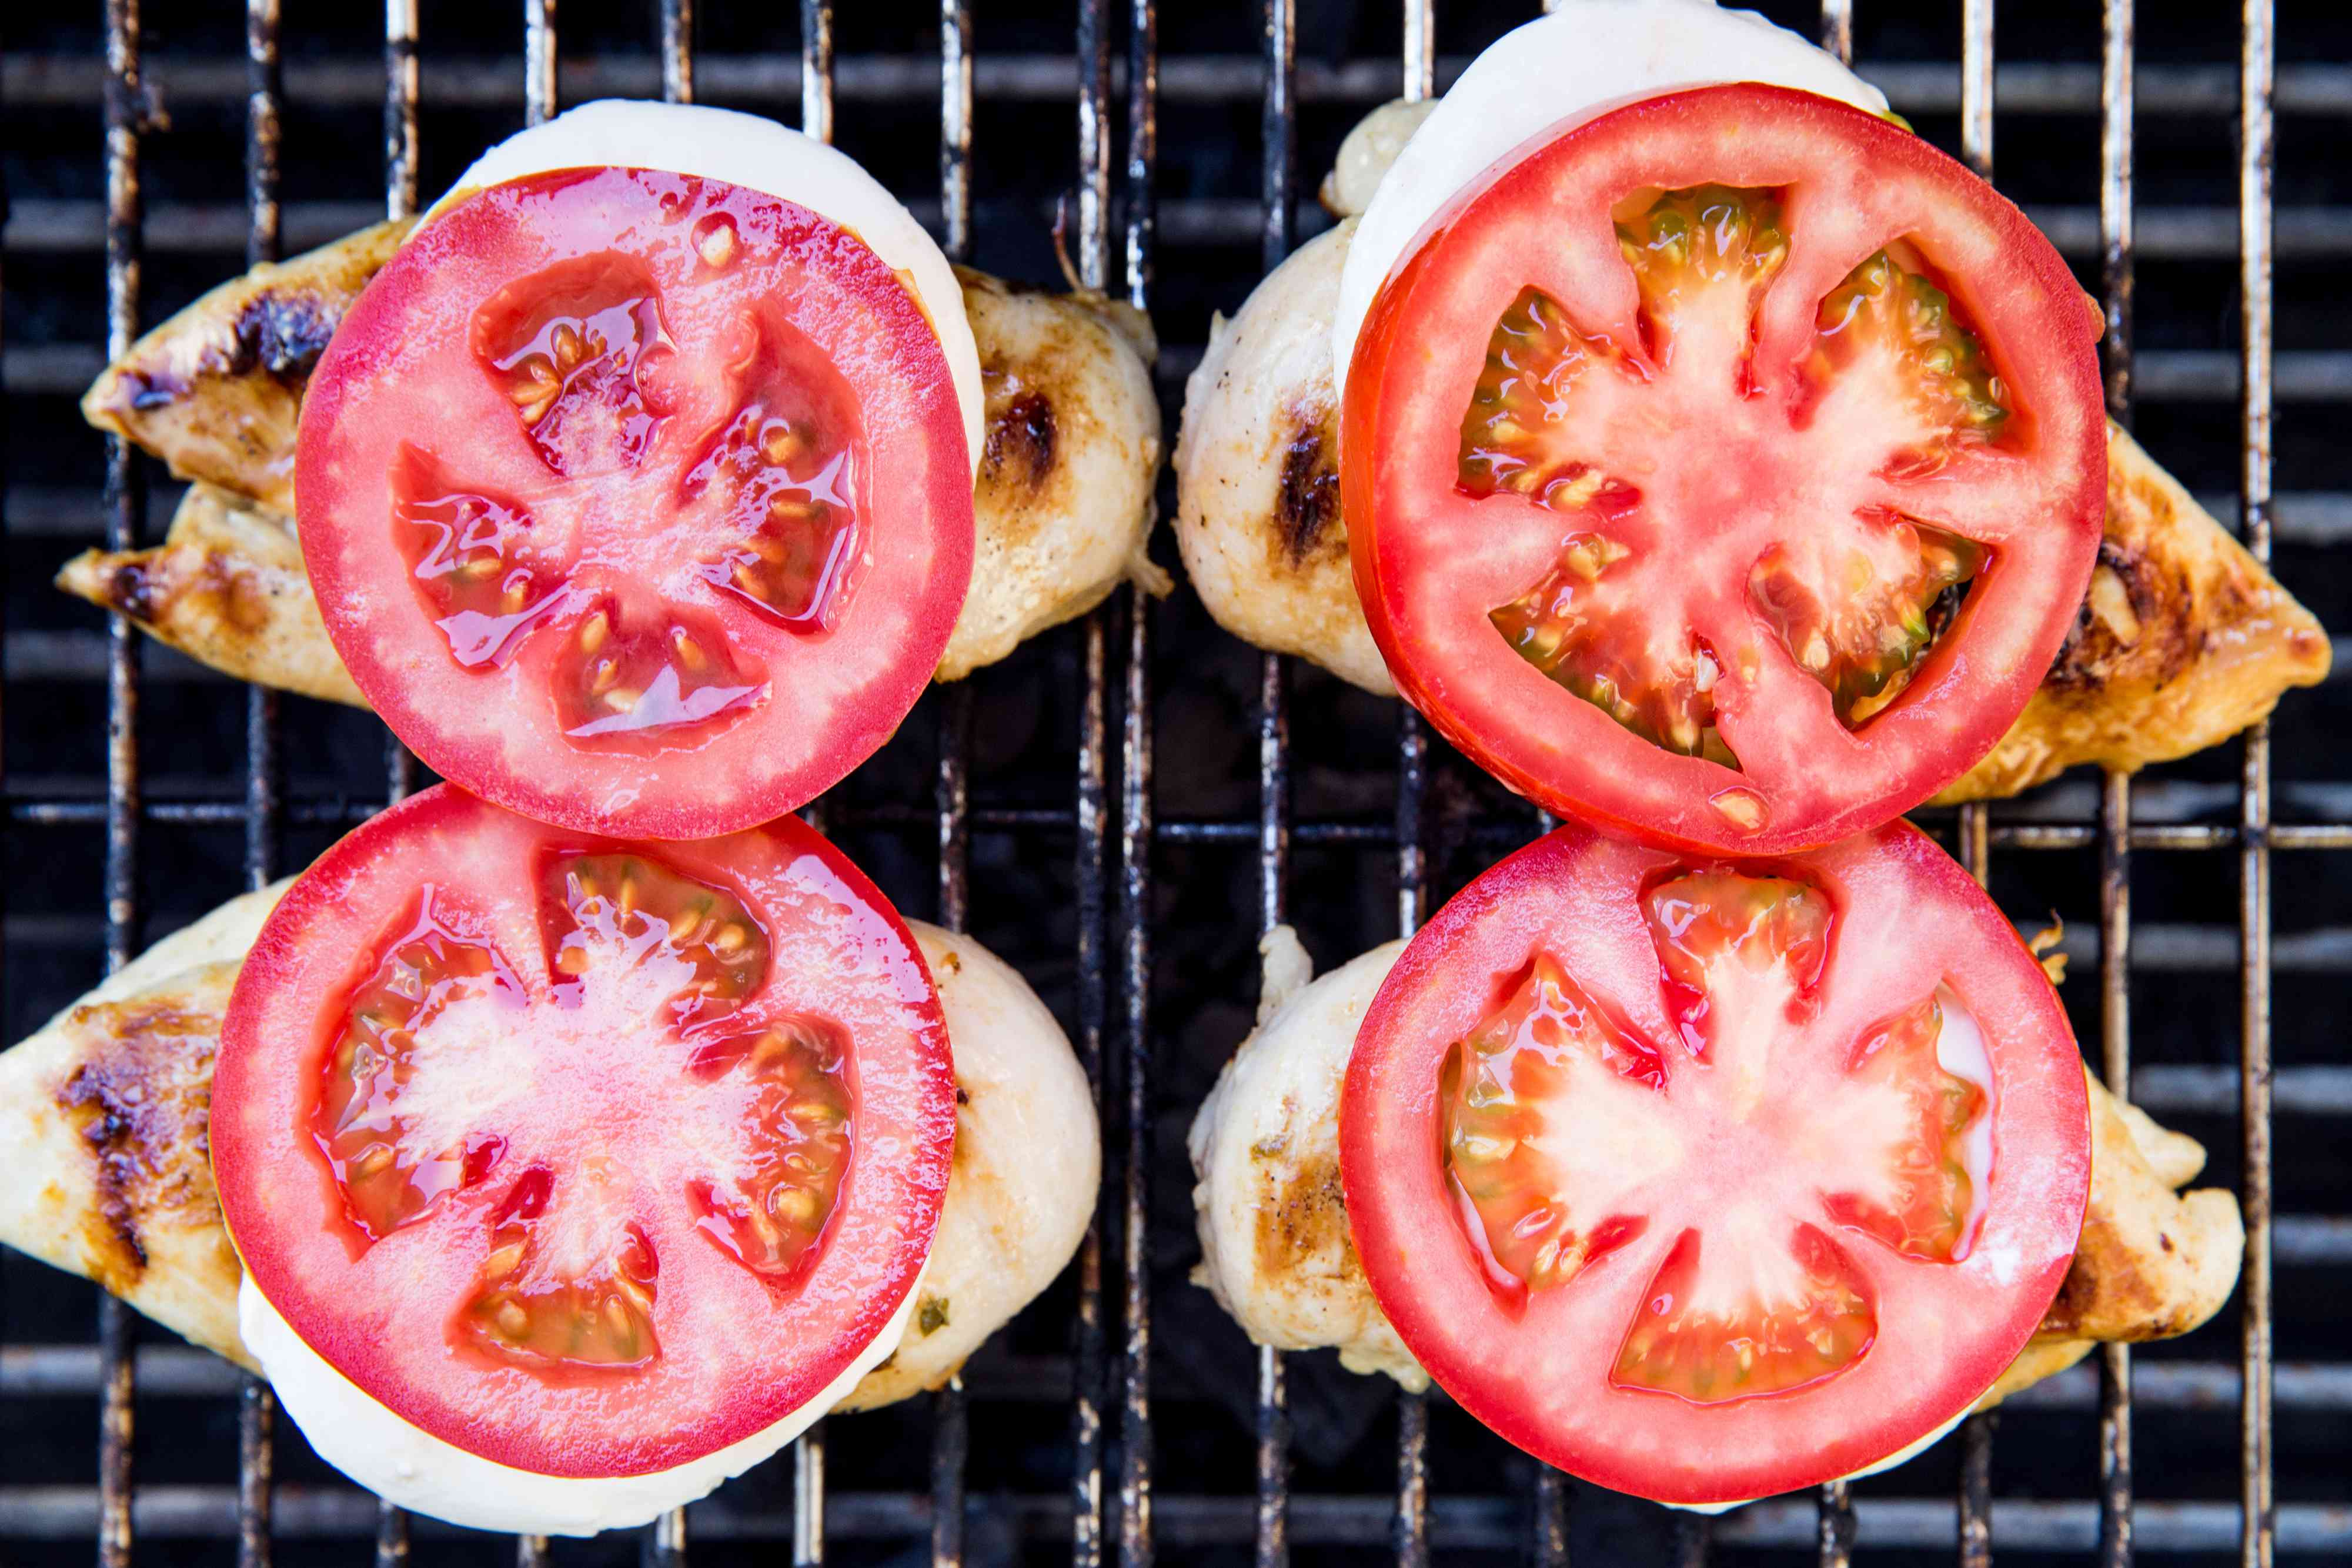 chicken with mozzarella and tomato on top, on the grill